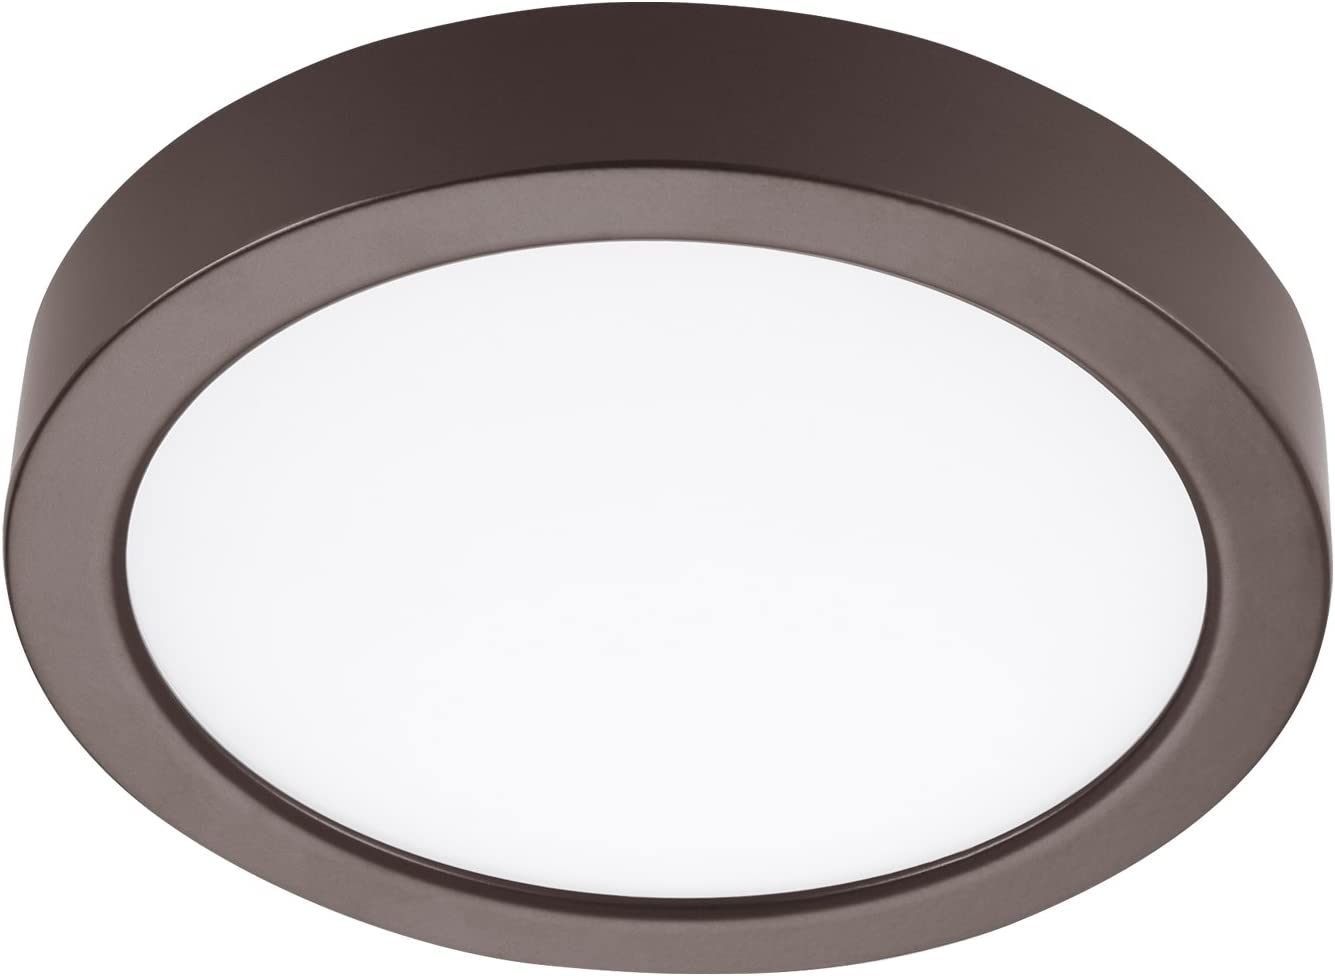 GetInLight Round 6-inch Dimmable Flush Mount Ceiling Fixture, (2nd Generation), 11 Watt, Bronze Finish, 3000K Soft White, 65W Replacement, Damp Location Rated, ETL Listed, IN-0306-1-BZ